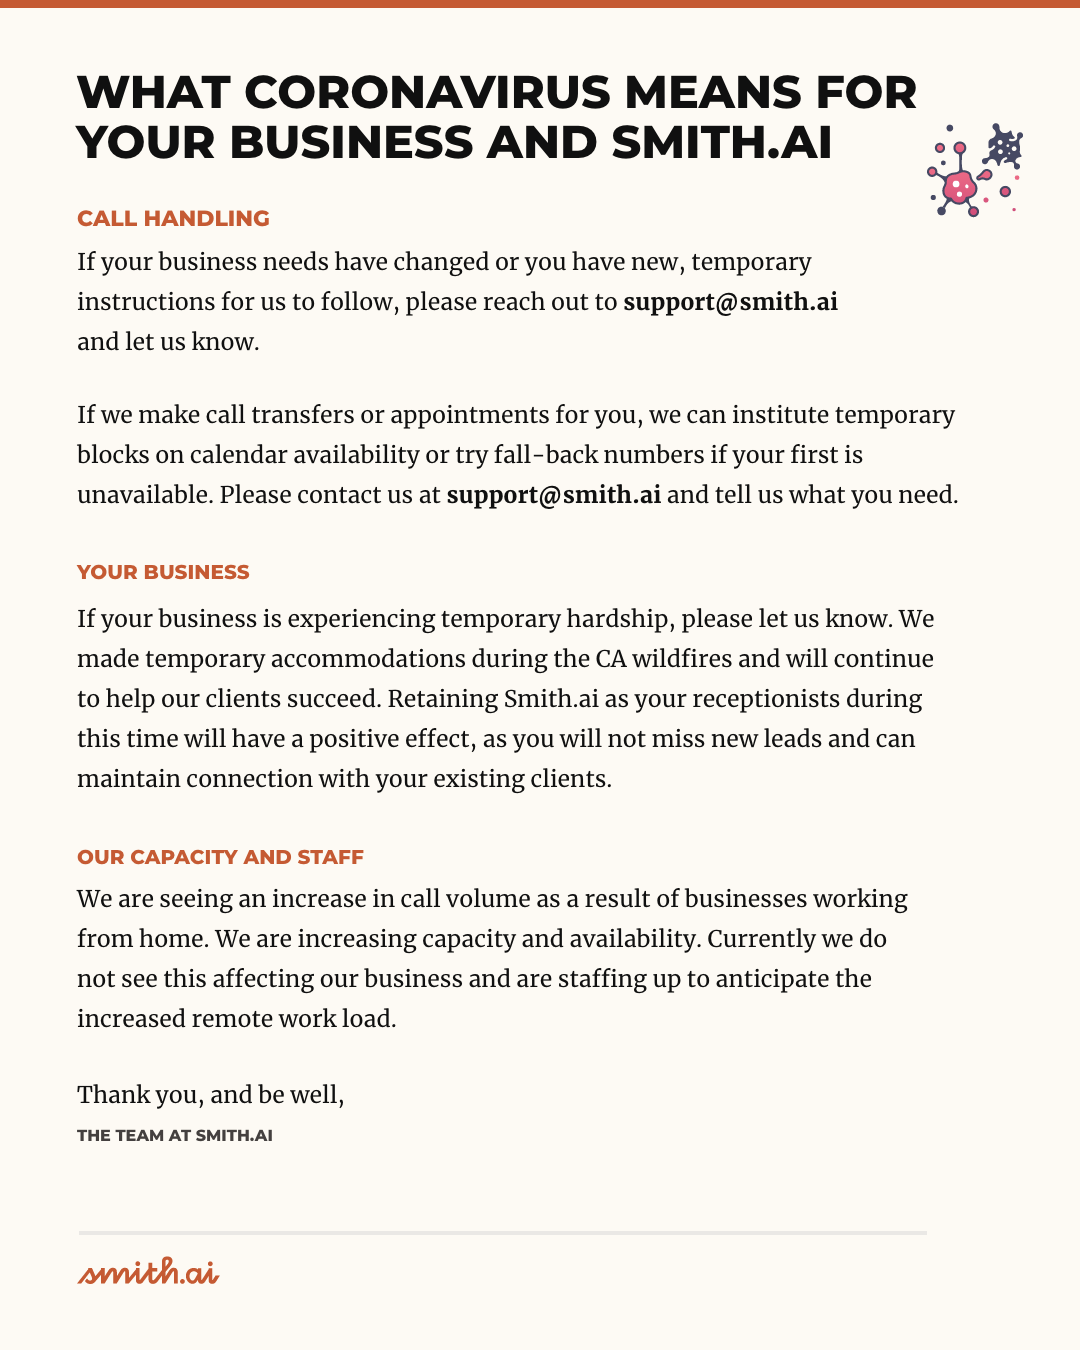 Smith.ai Will Help Your Business Through COVID-19